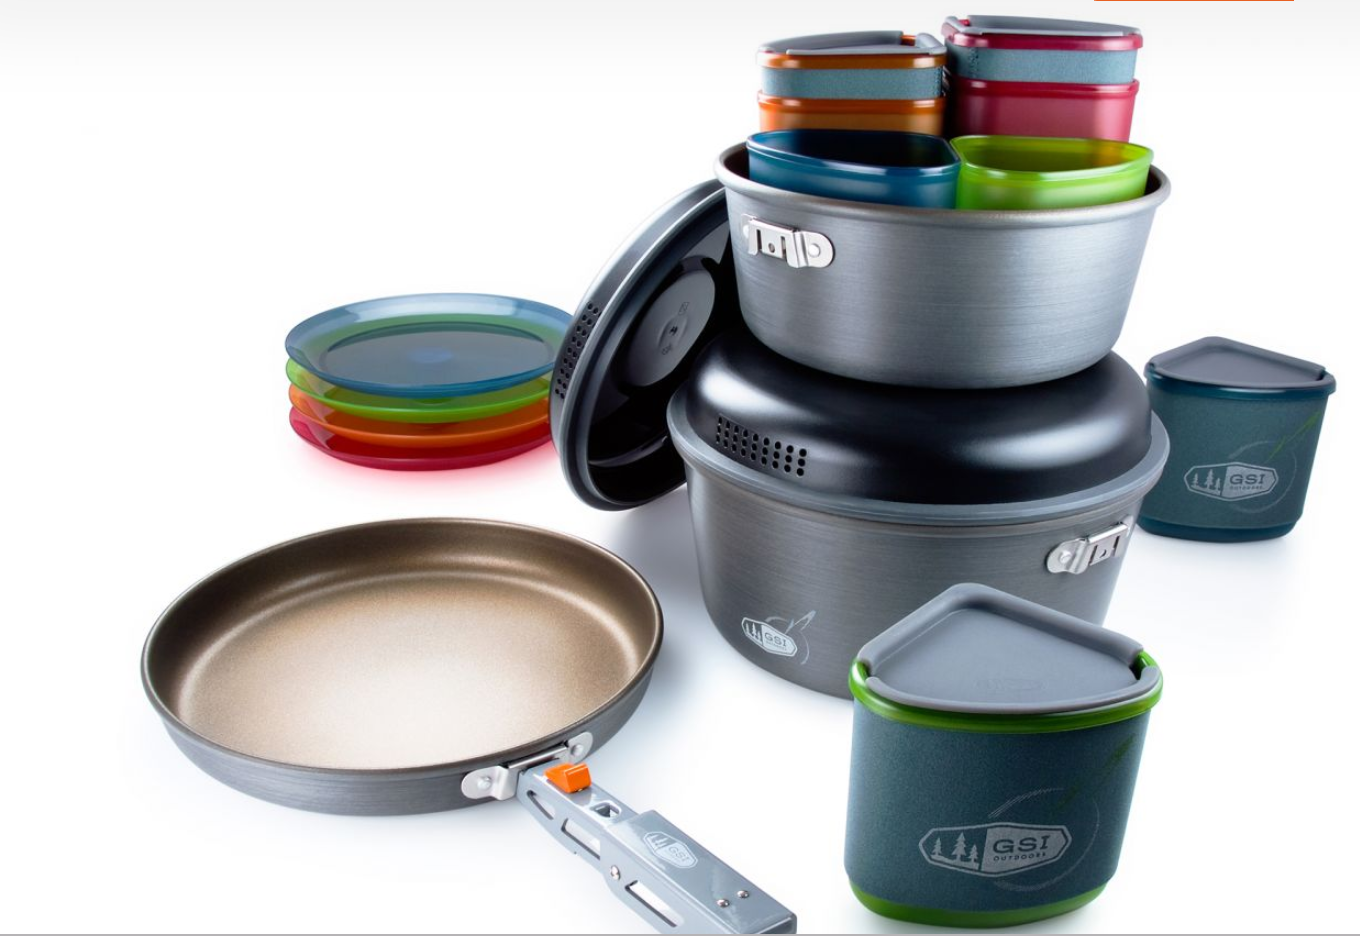 The GSI Pinnacle cookset includes 2 pots, one frying pan, 1 pot gripper, 4 plates, 4 bowls, 4 sippy mugs, and a welded sink/stuff sack.